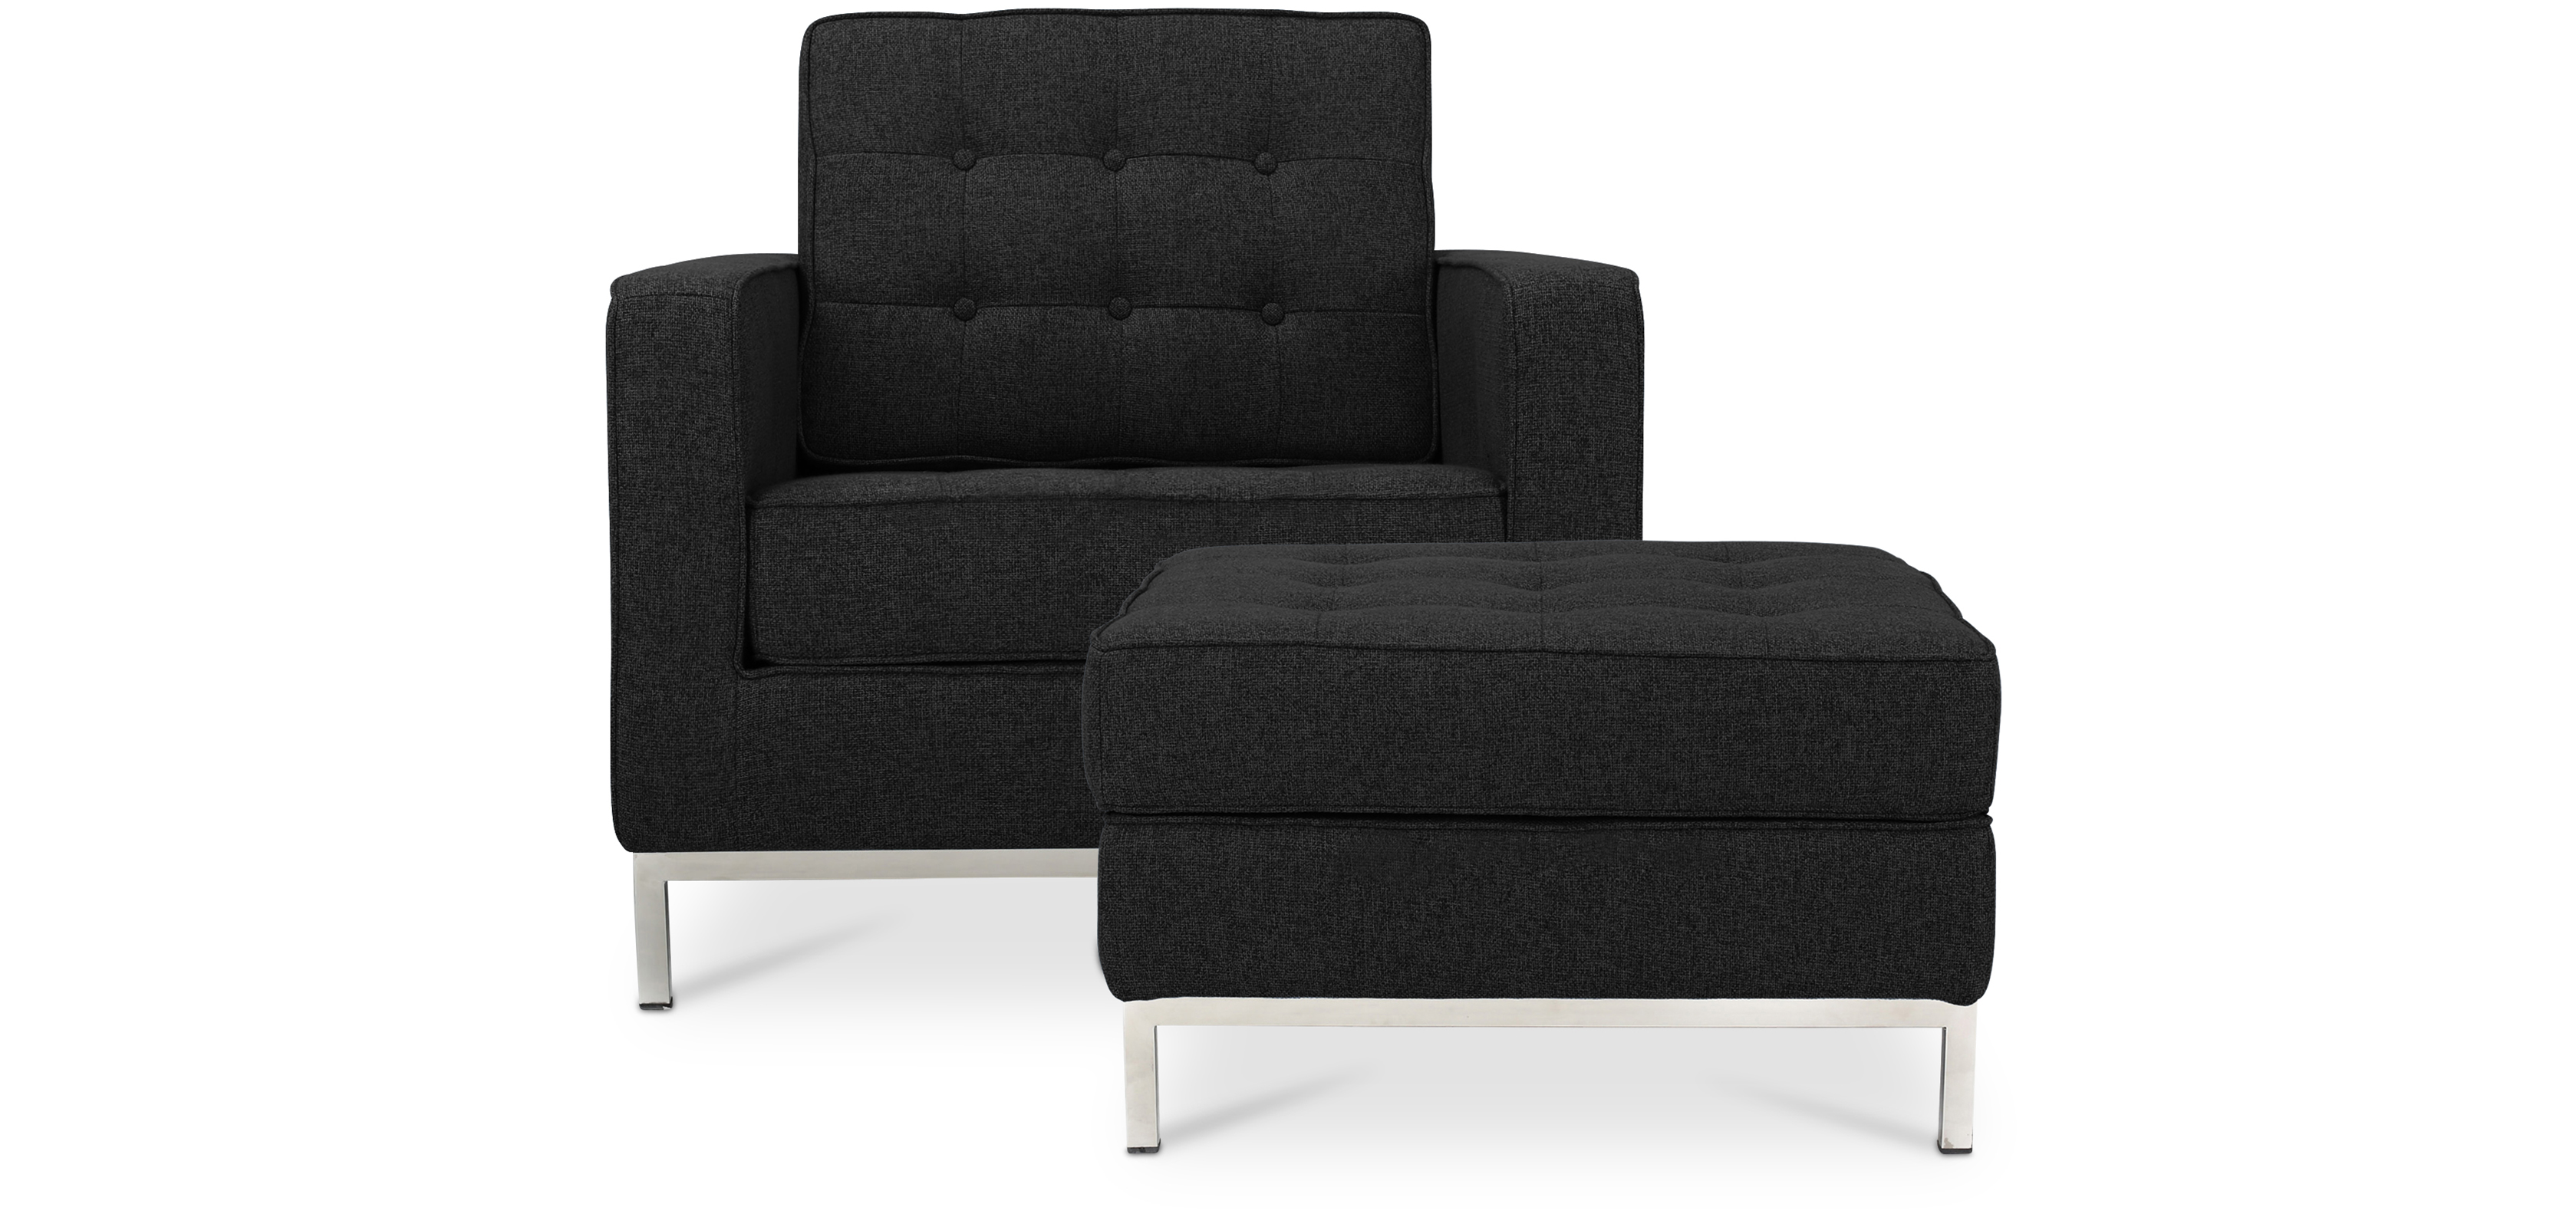 Fauteuil Ottoman Fauteuil Knoll Avec Ottoman Assorti Style Florence Knoll